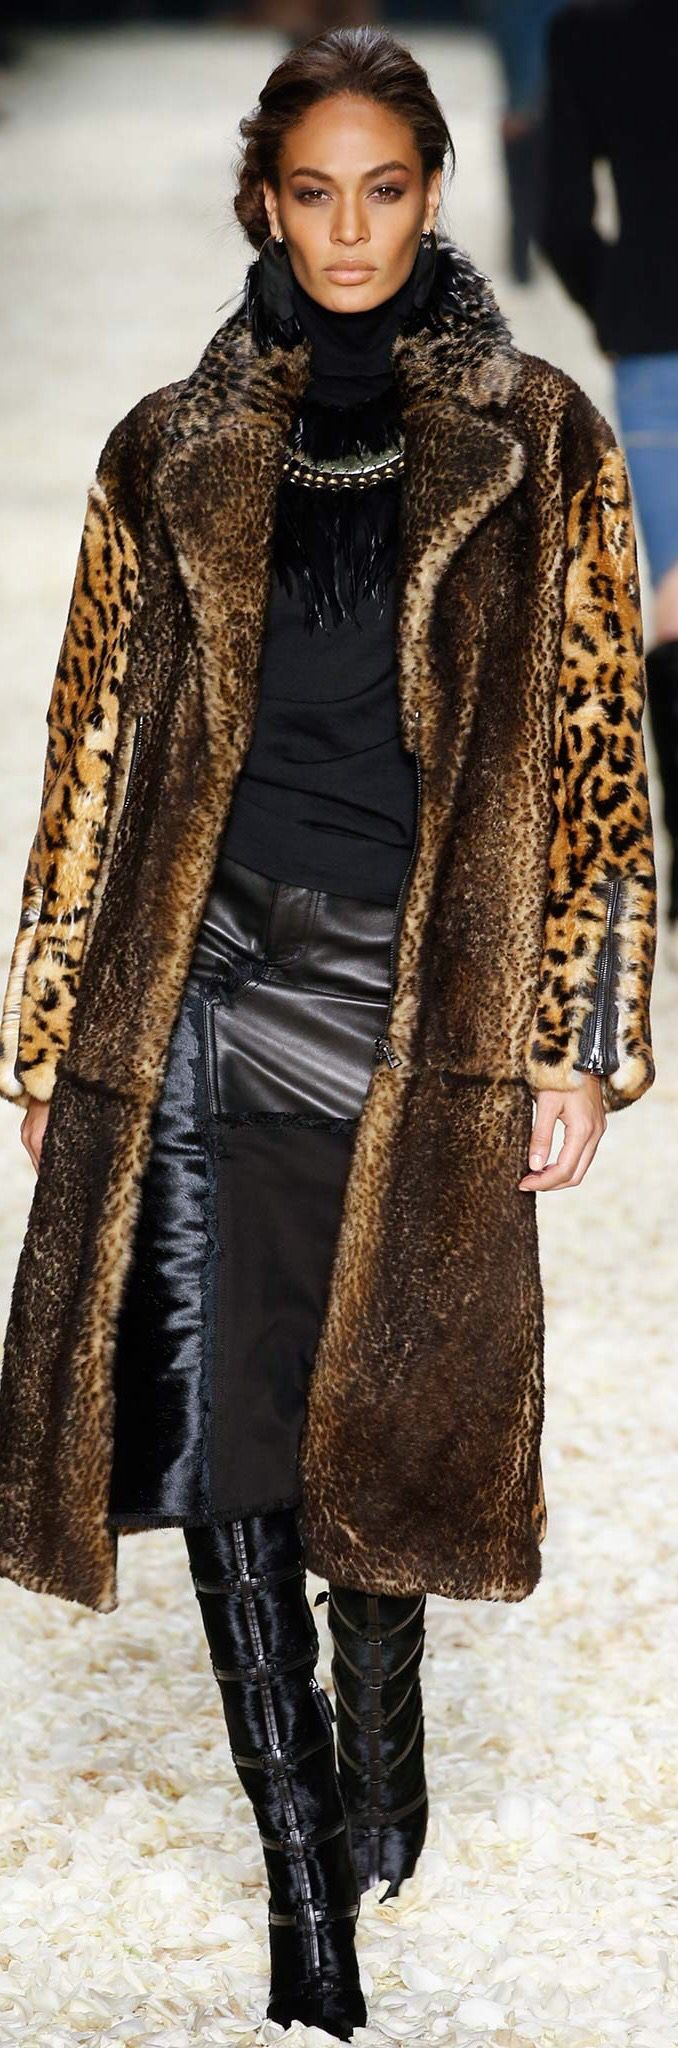 Tom Ford Fall 2015 RTW -as long as this is fake fur, I think this outfit just rocks.